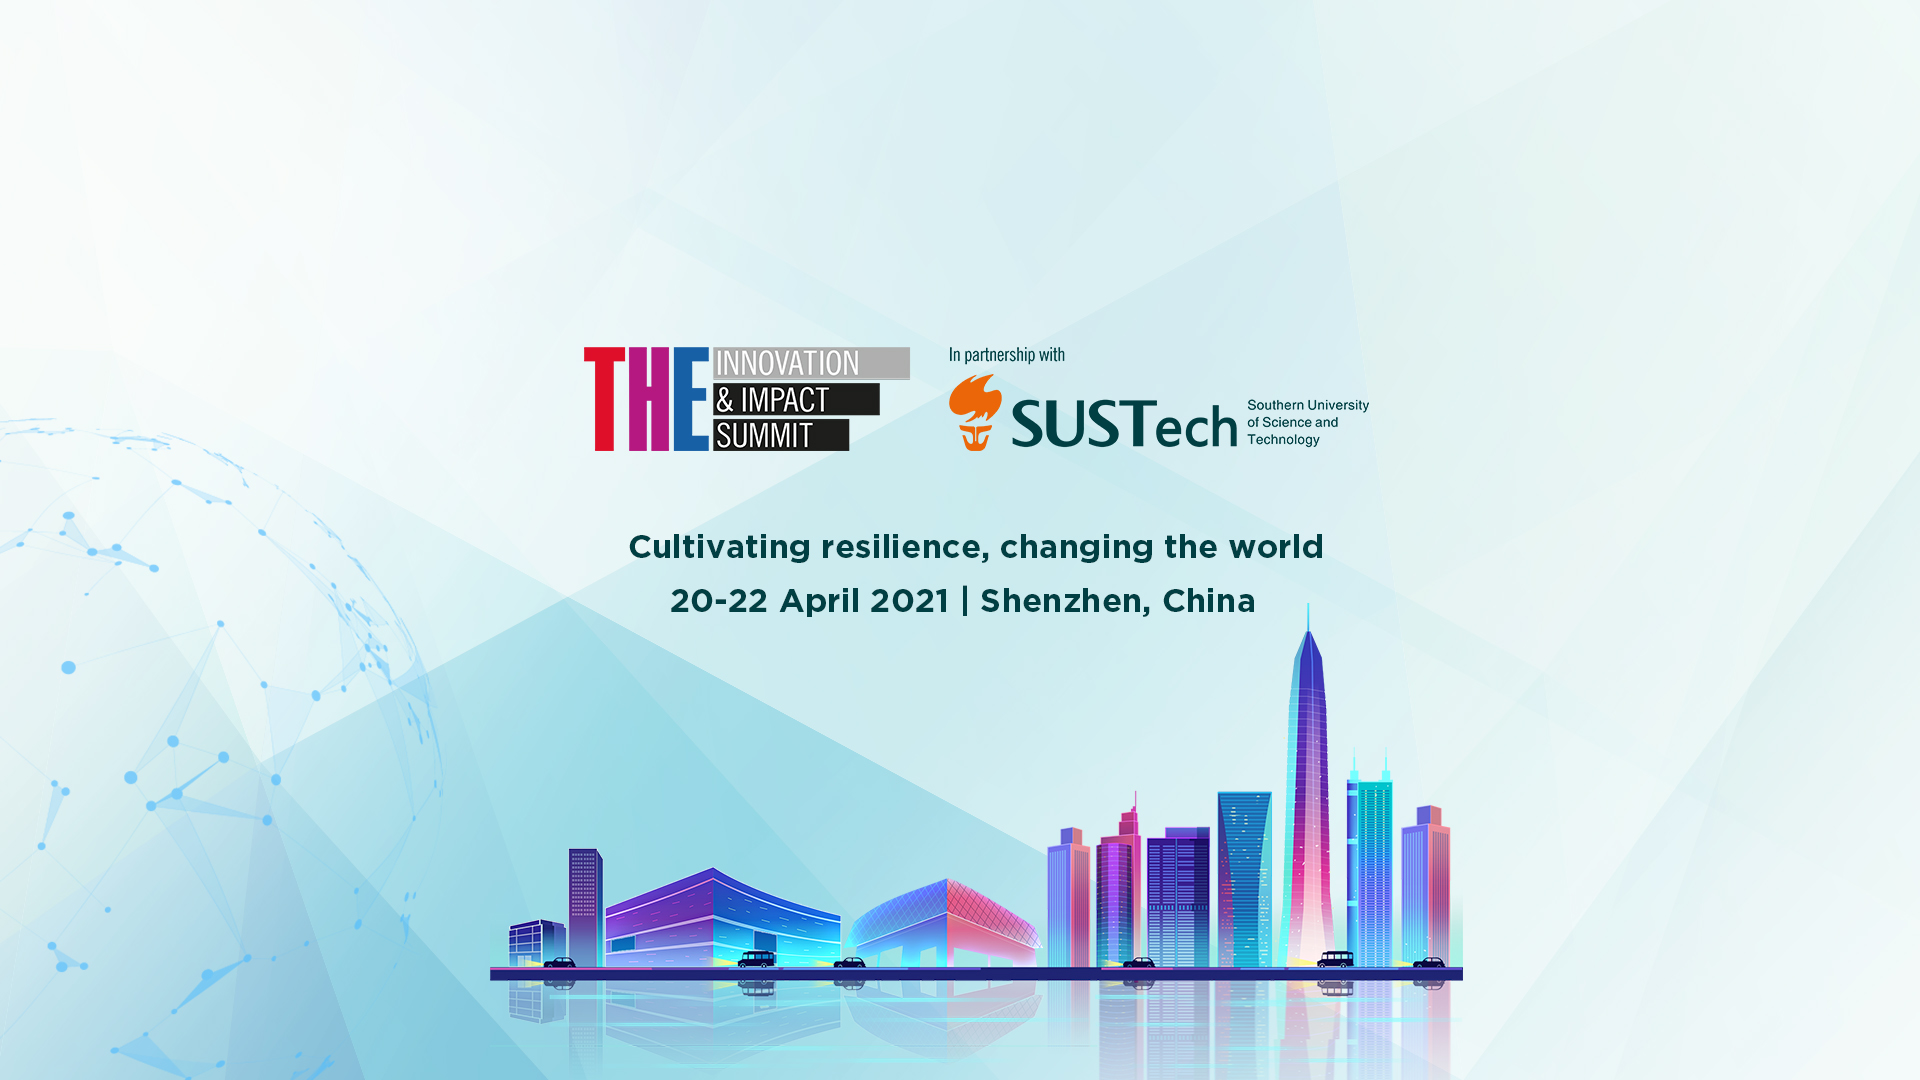 SUSTech to co-host 2021 Times Higher Education Innovation & Impact Summit in Shenzhen